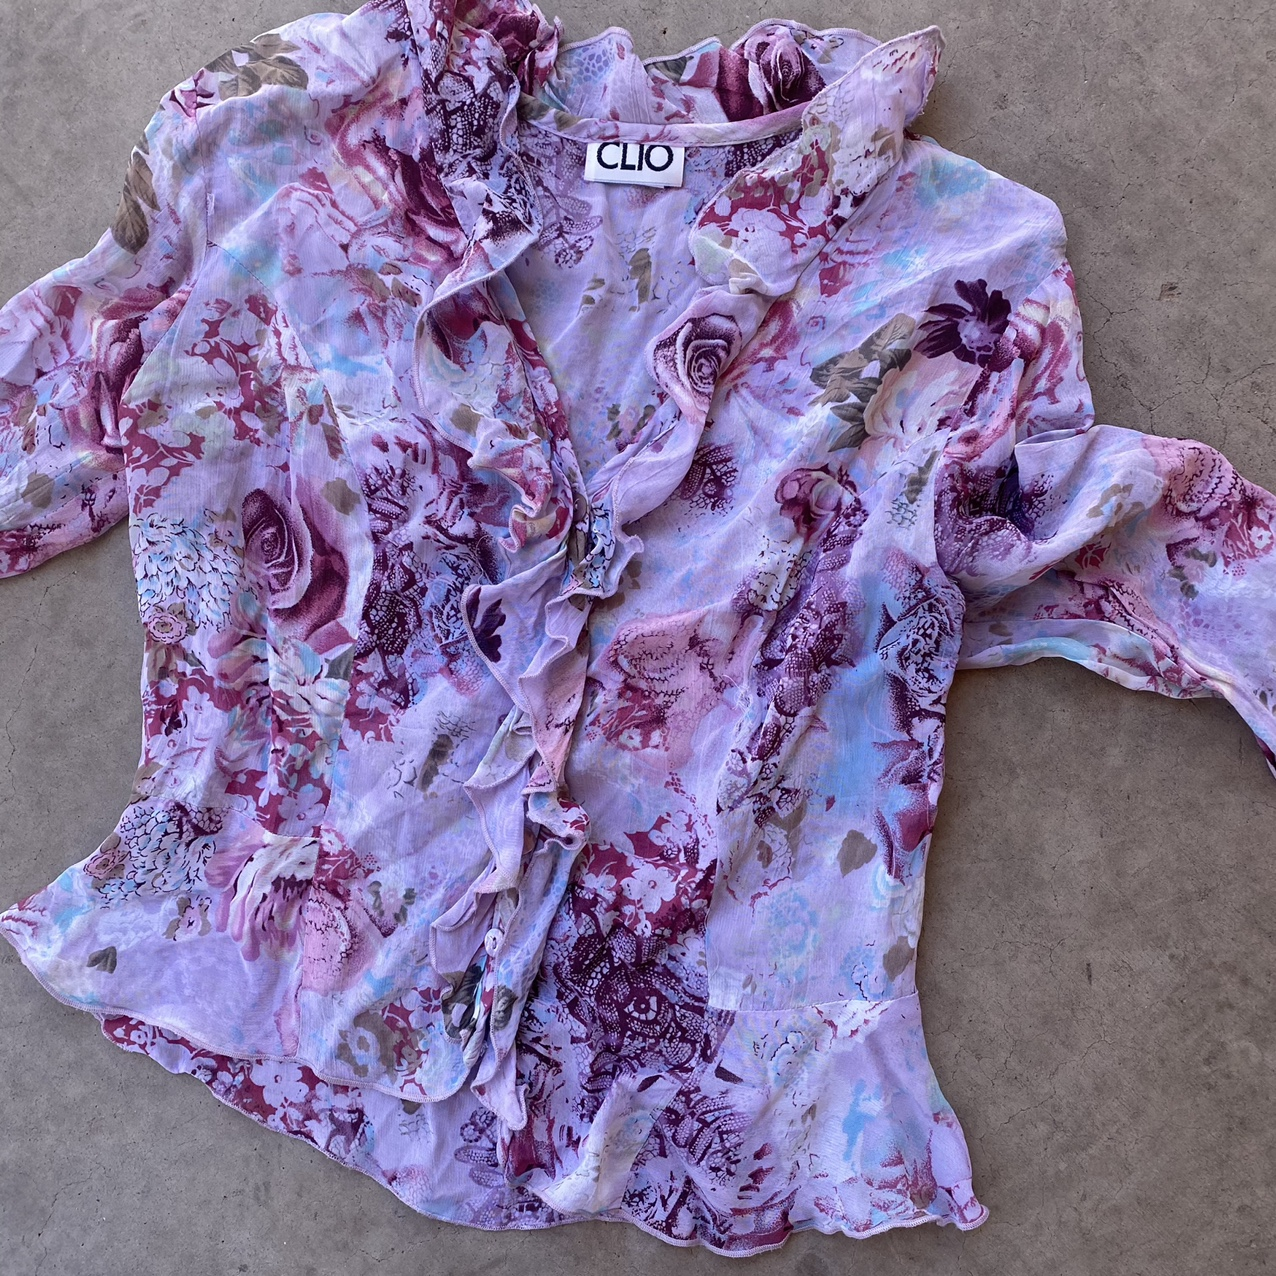 Product Image 1 - Vintage clip top. Very similar